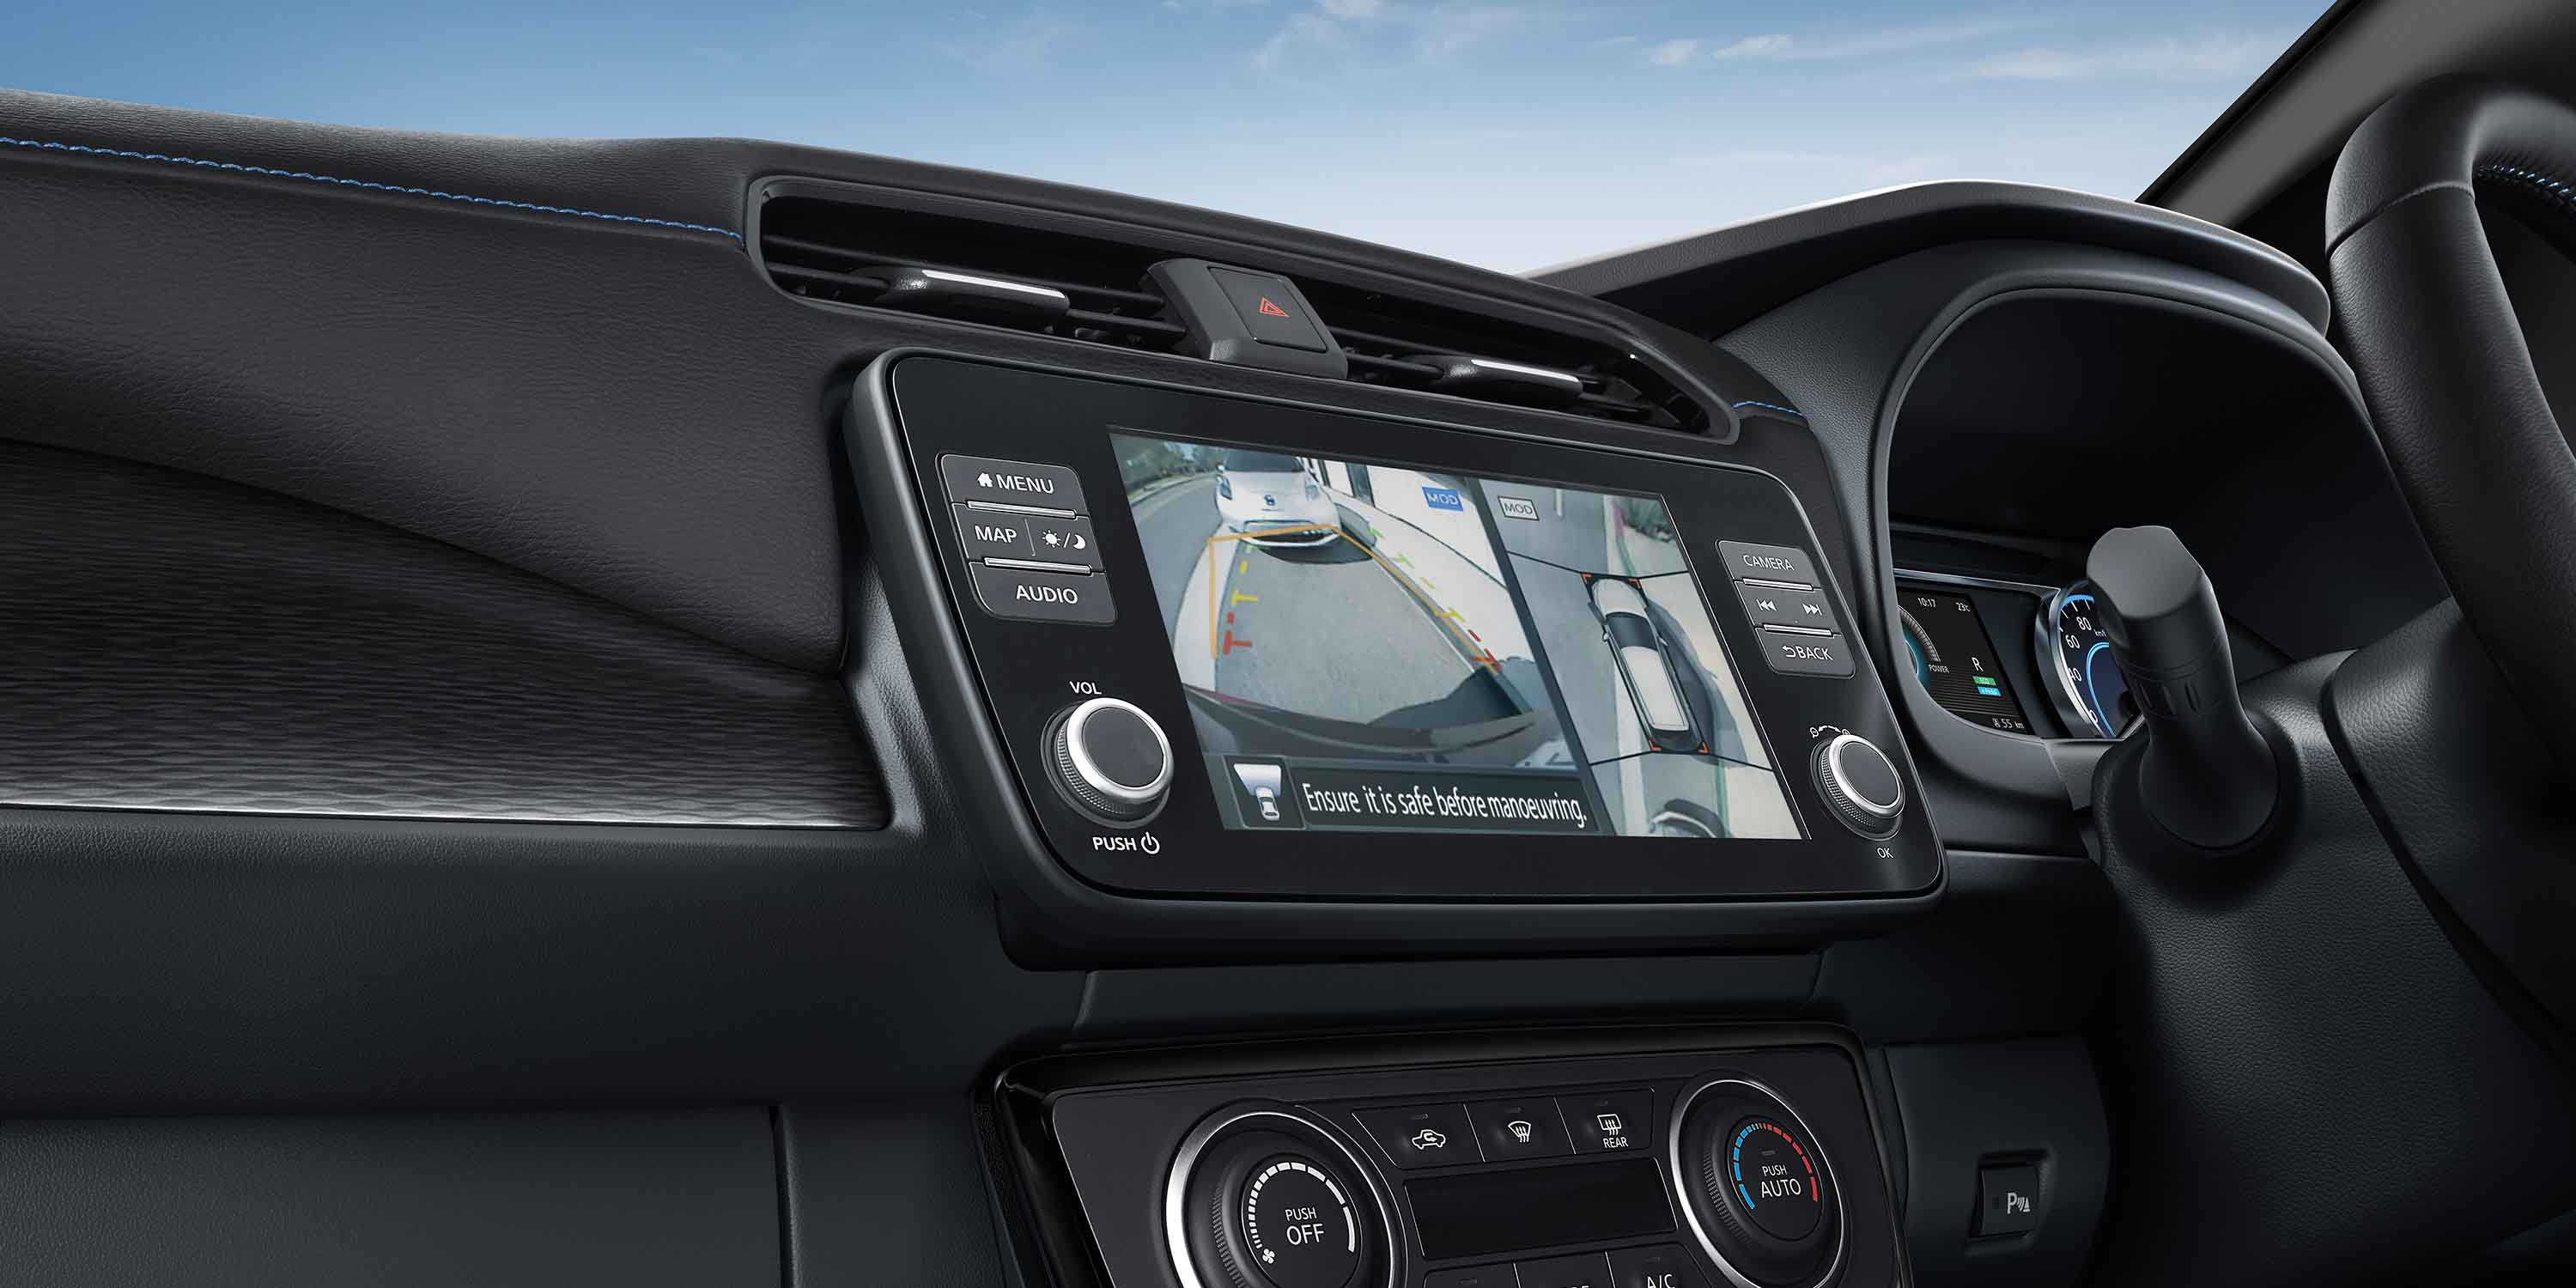 Nissan LEAF centre console and touch-screen display